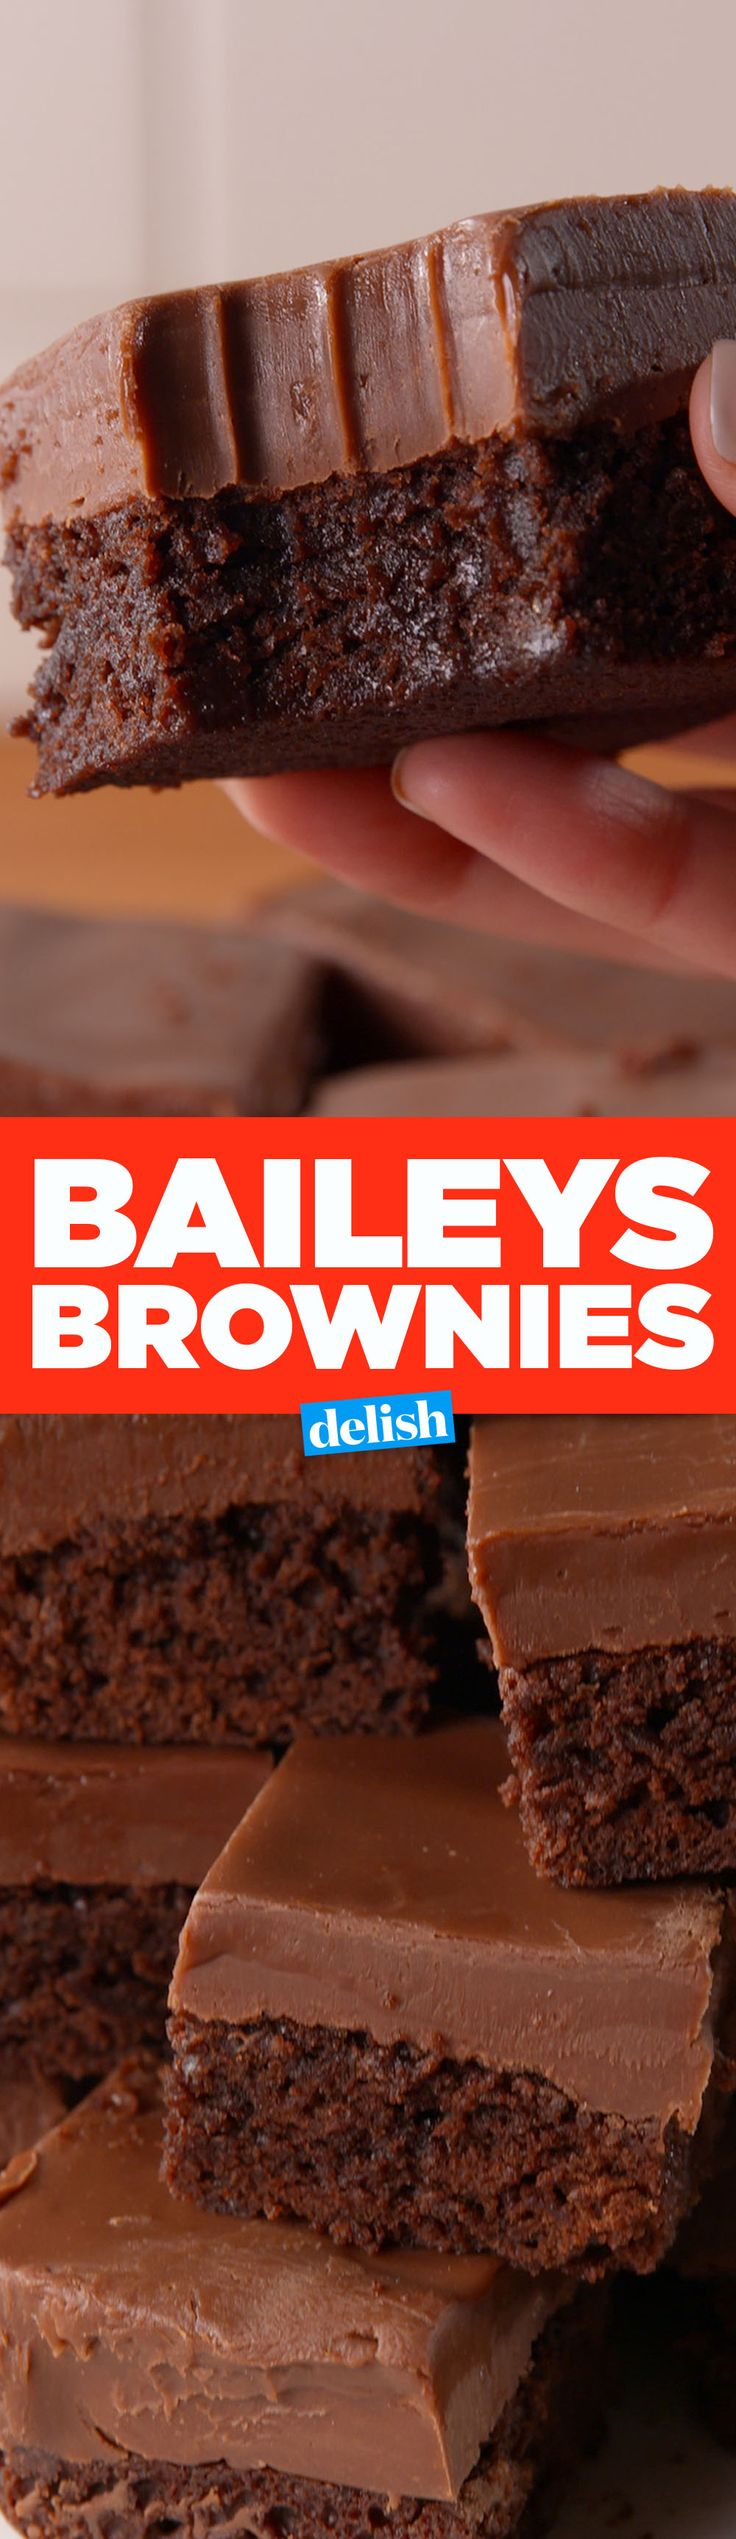 Baileys + brownies = match made it heaven. Get the recipe on Delish.com.